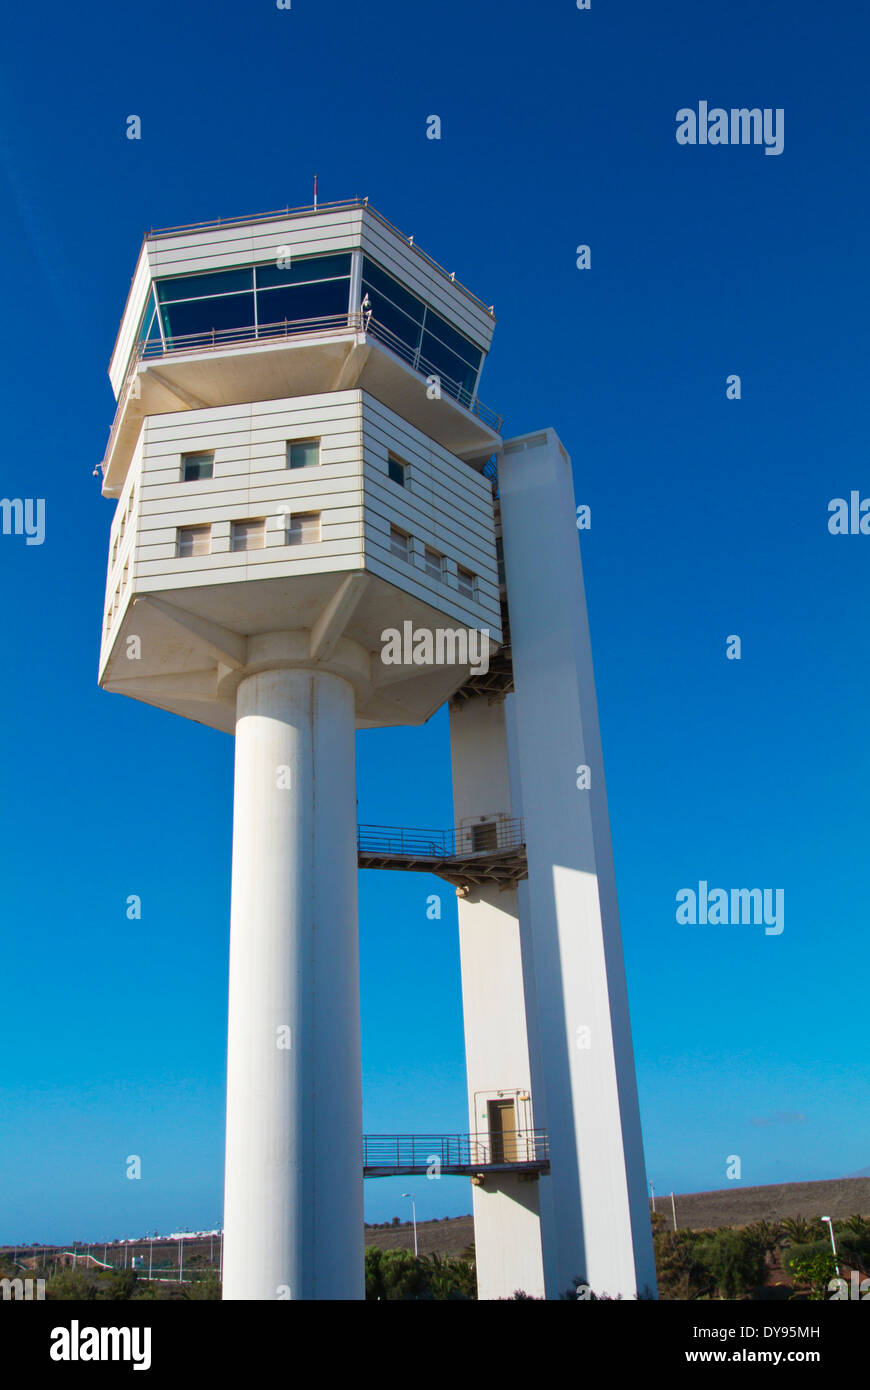 Air traffic control tower, Arrecife, Lanzarote, Canary Islands, Spain, Europe - Stock Image